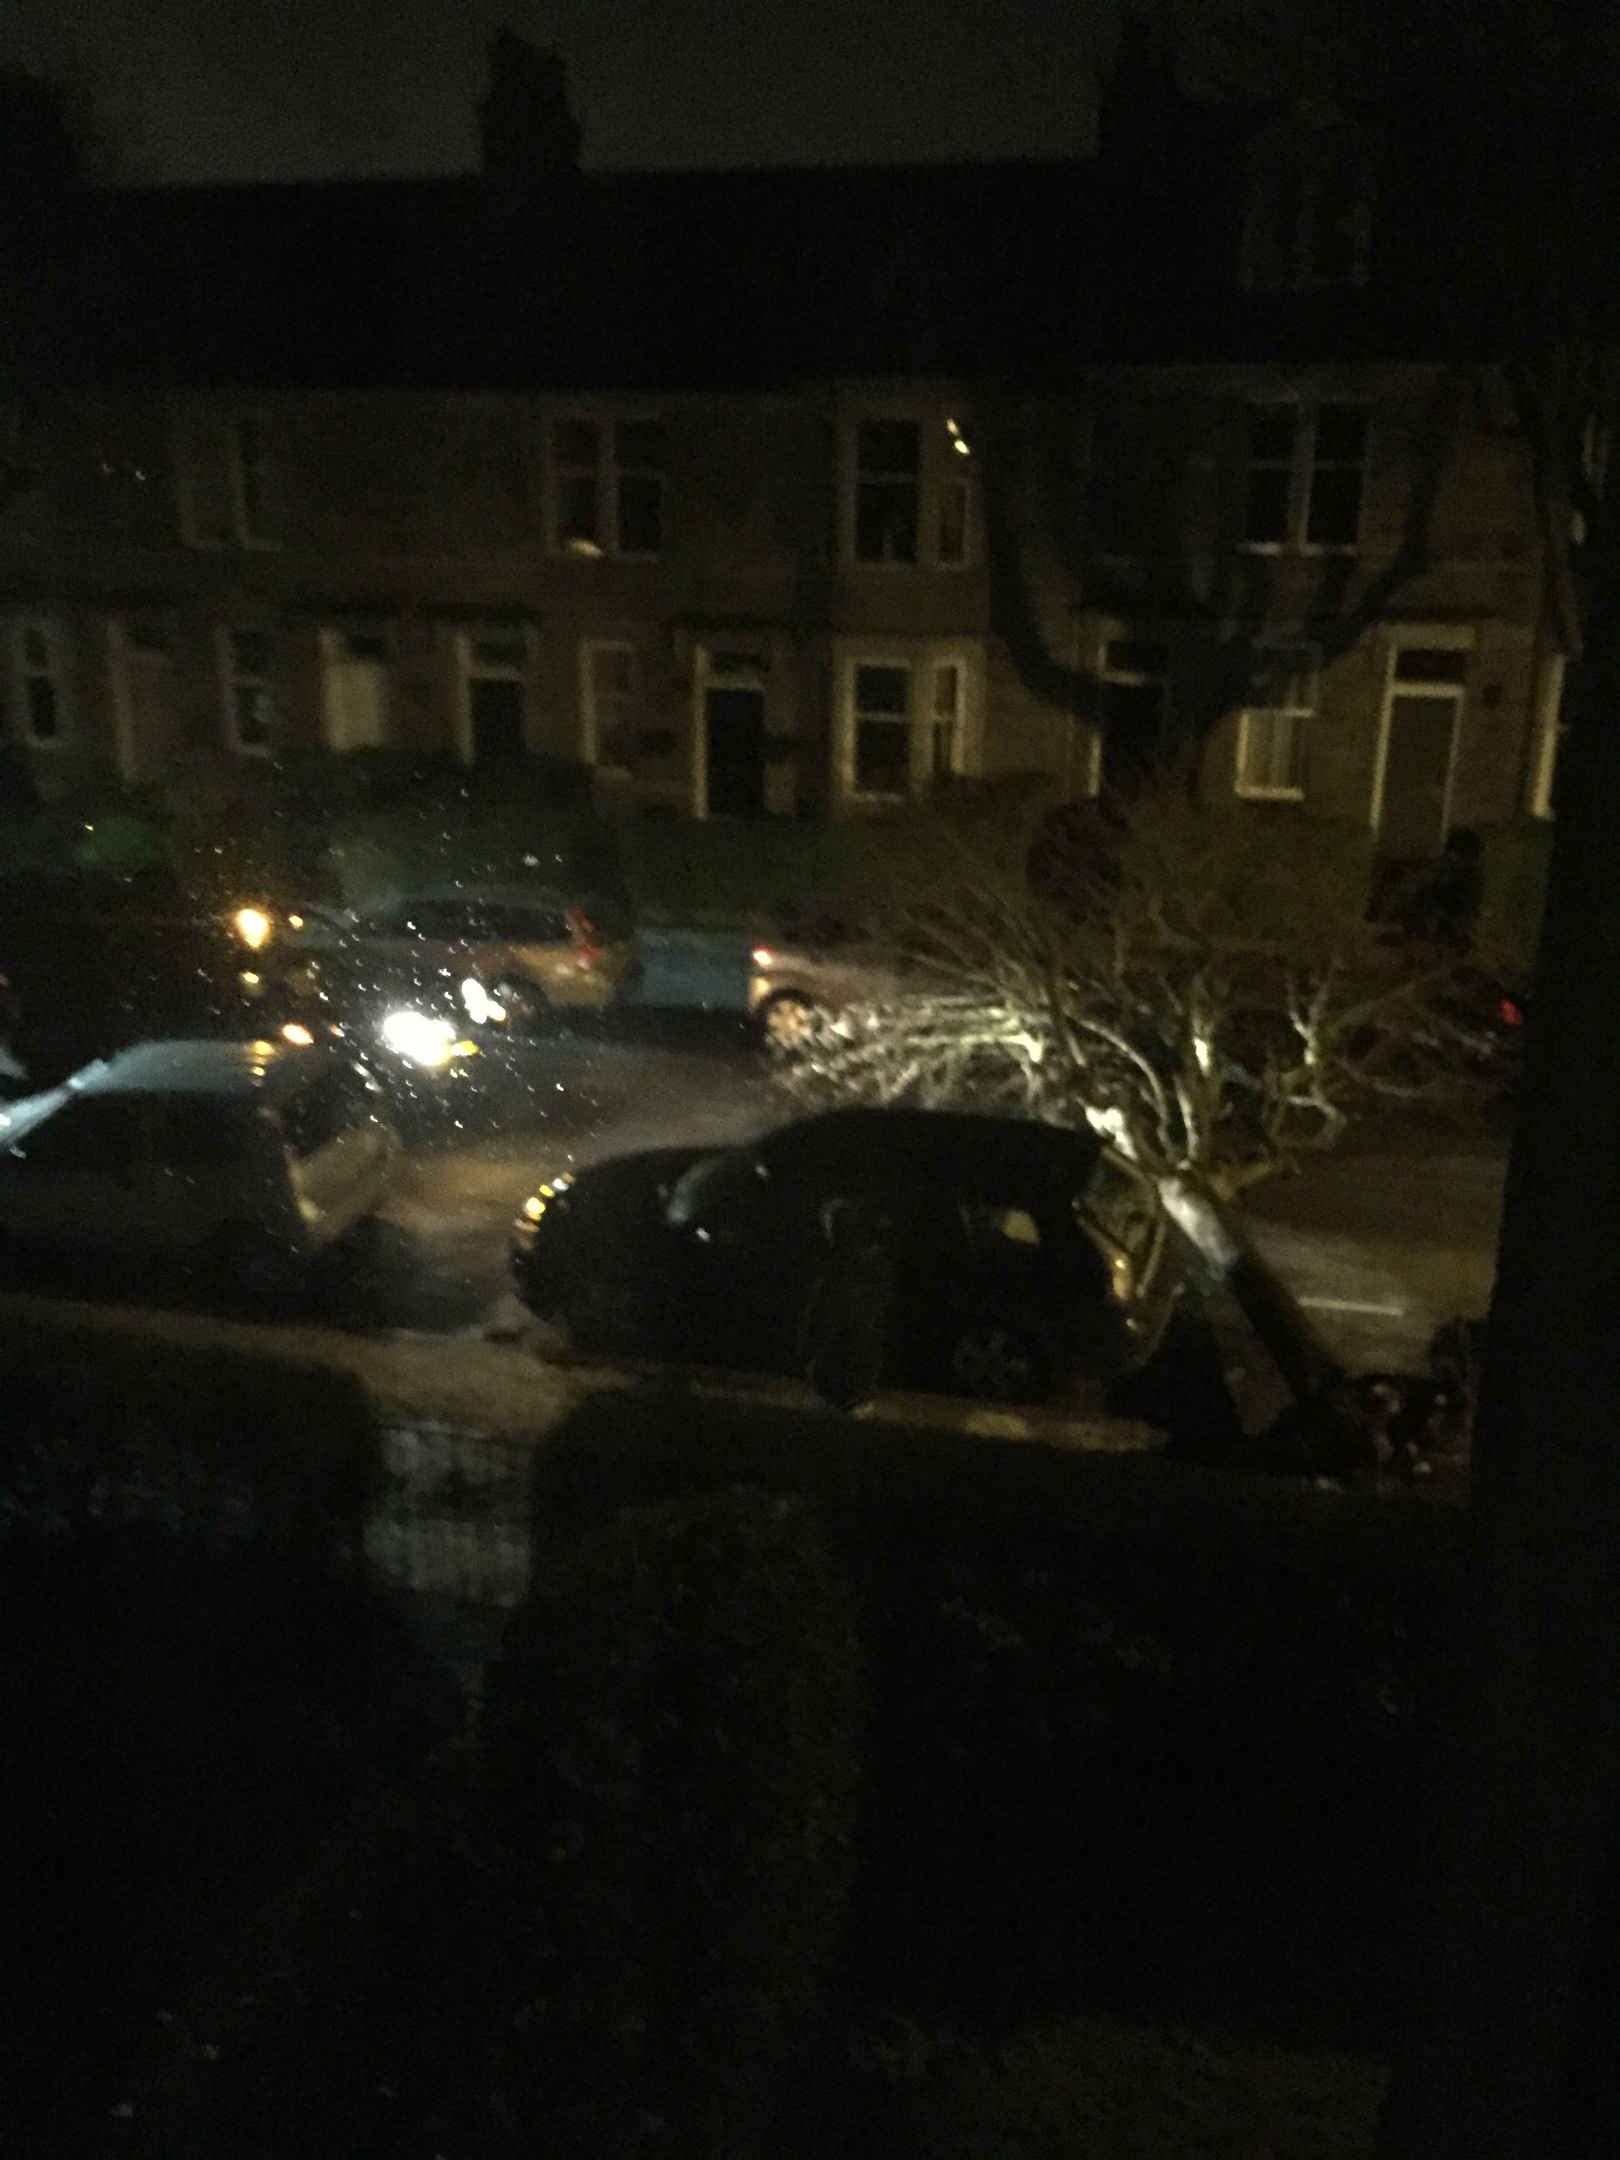 The tree after it fell onto a car parked nearby